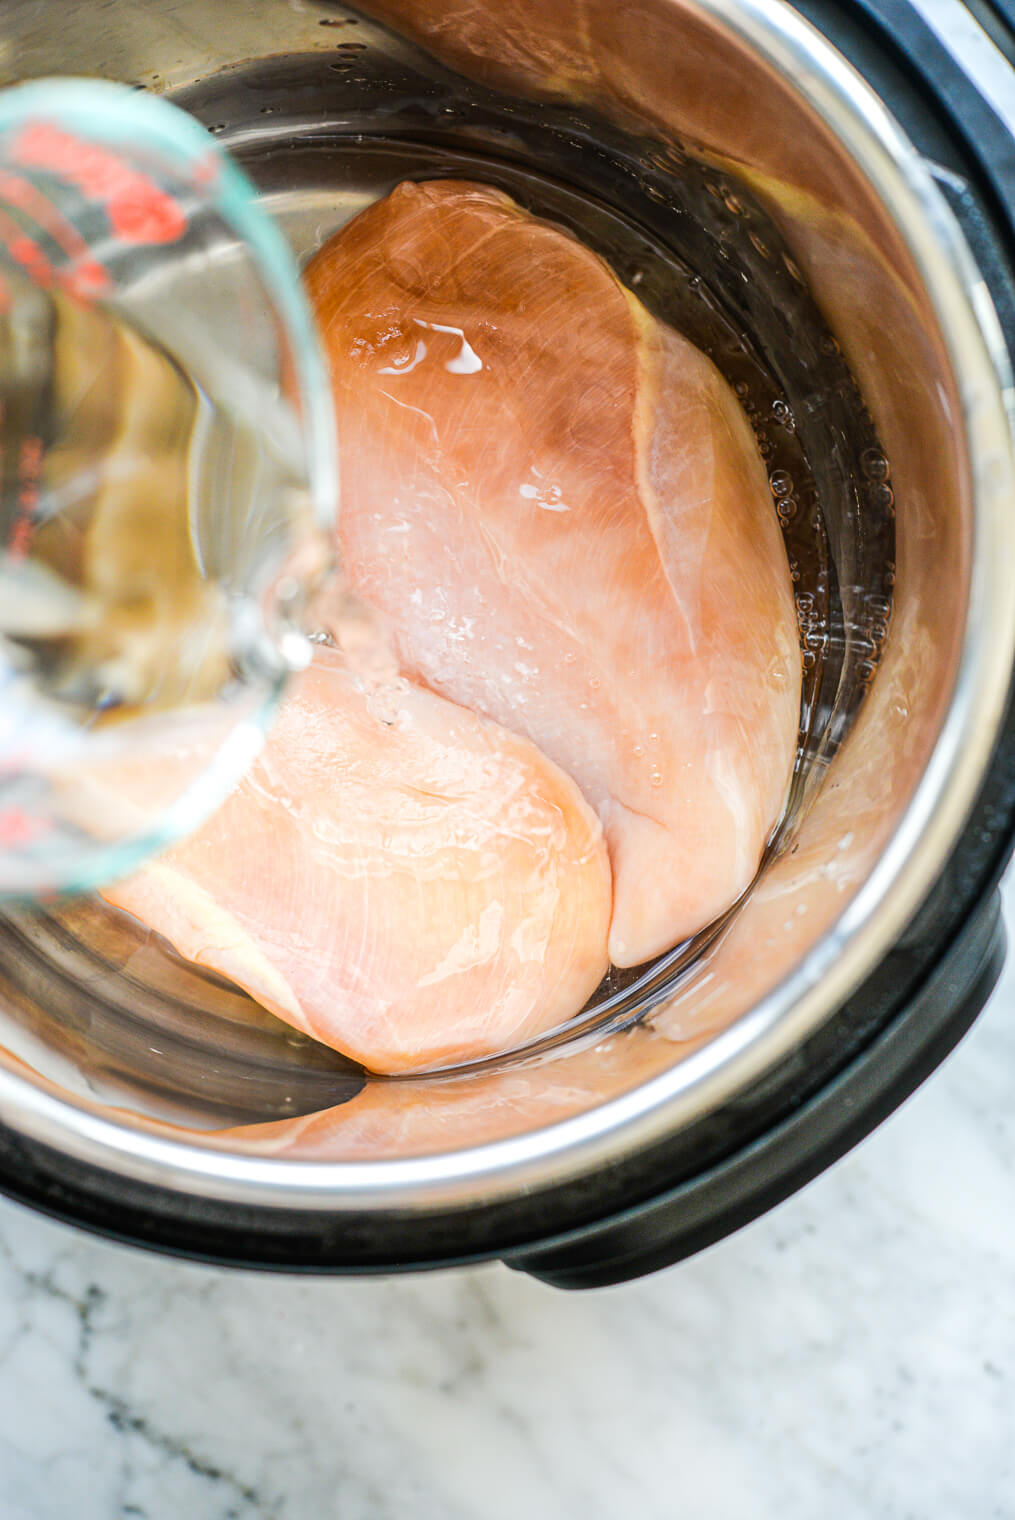 a person pouring a cup of water over two raw chicken breasts in an instant pot